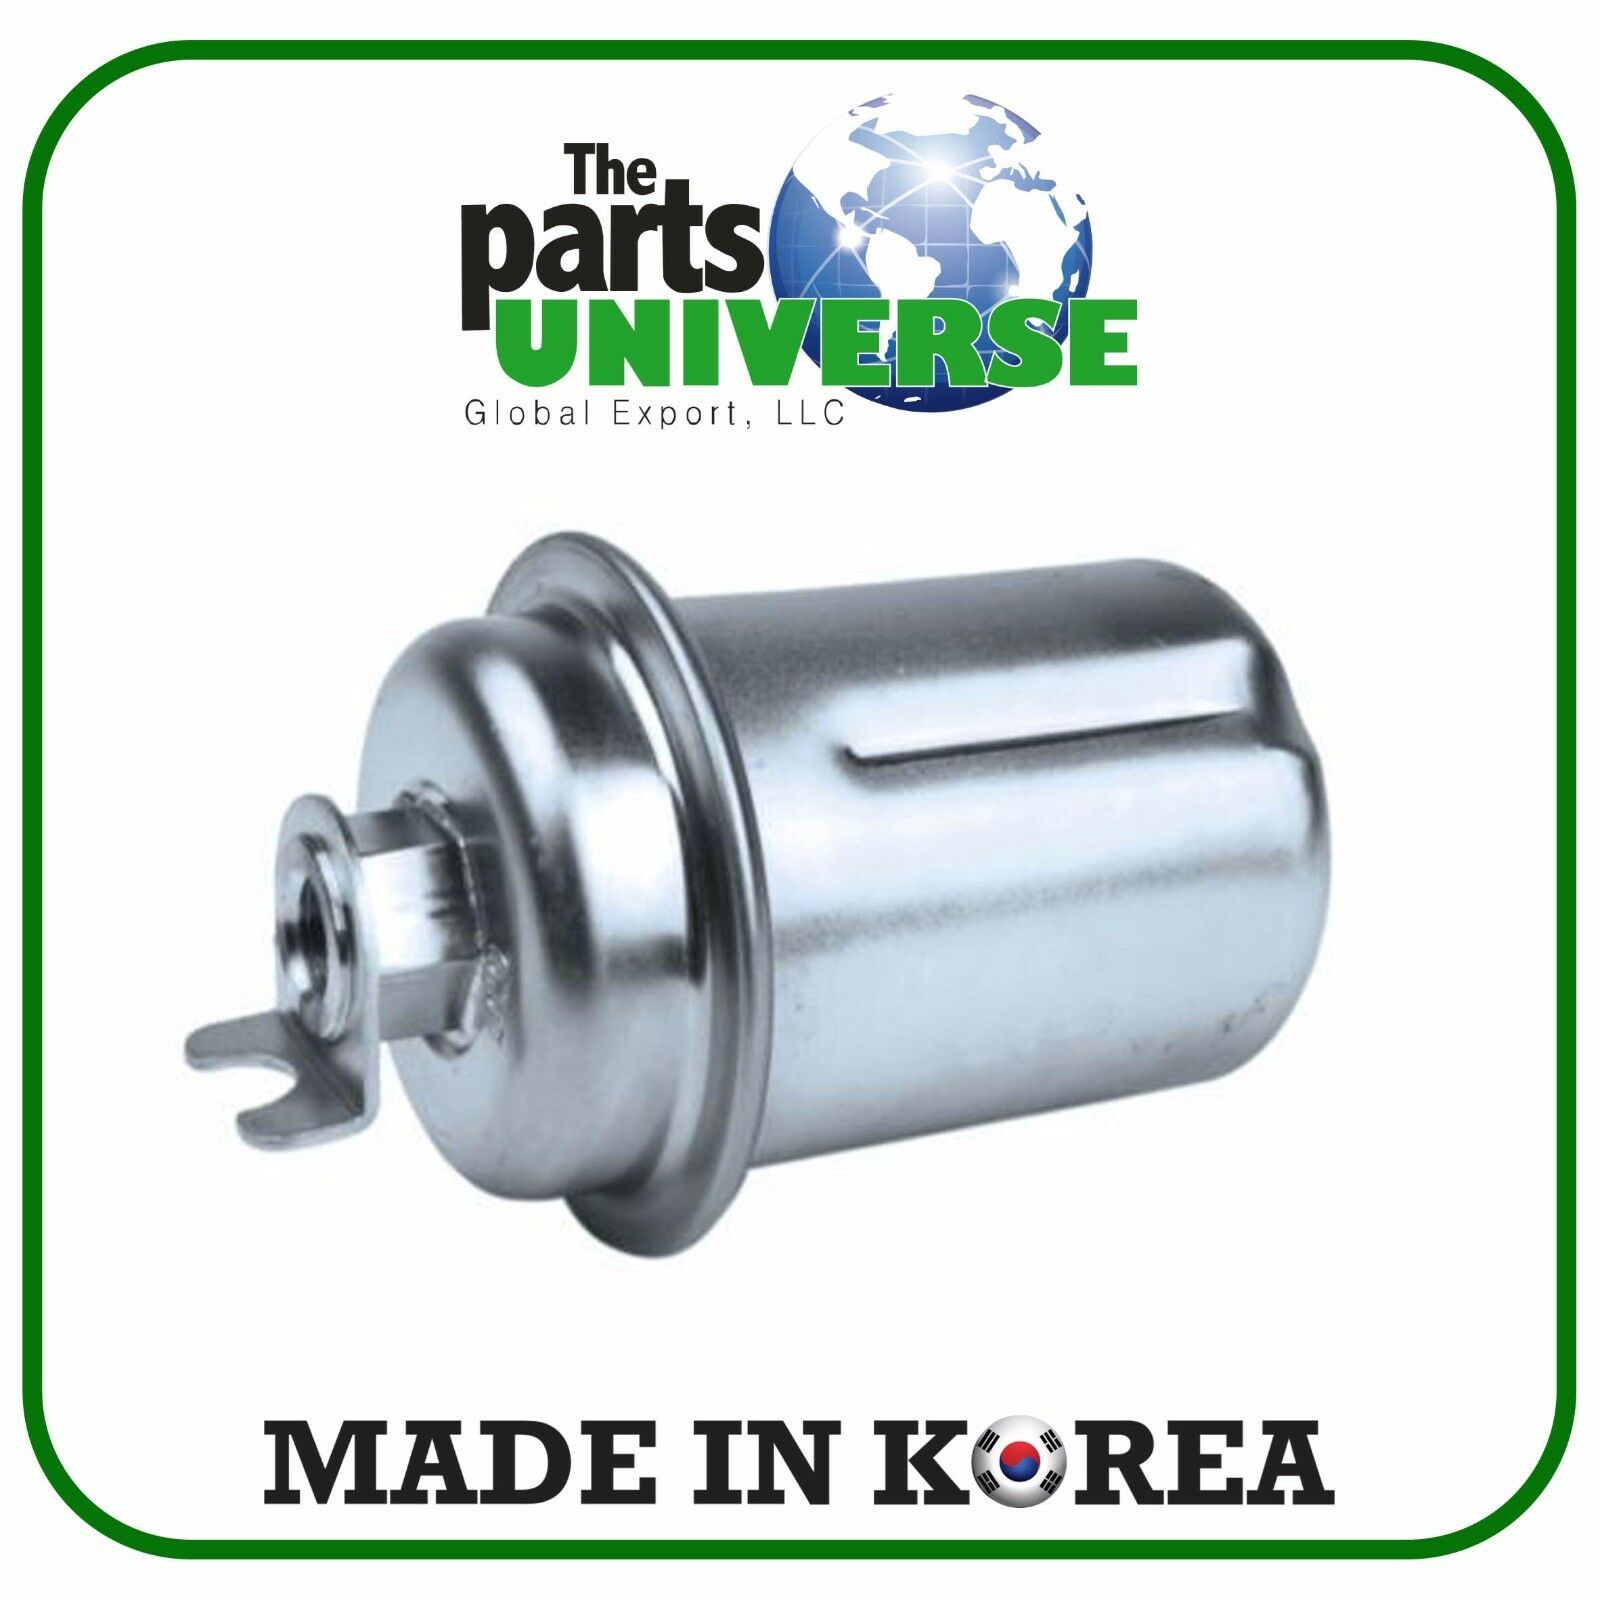 Fuel Filter Fits Hyundai Accent (1995-1999) 31911-22000 1 of 3 See More